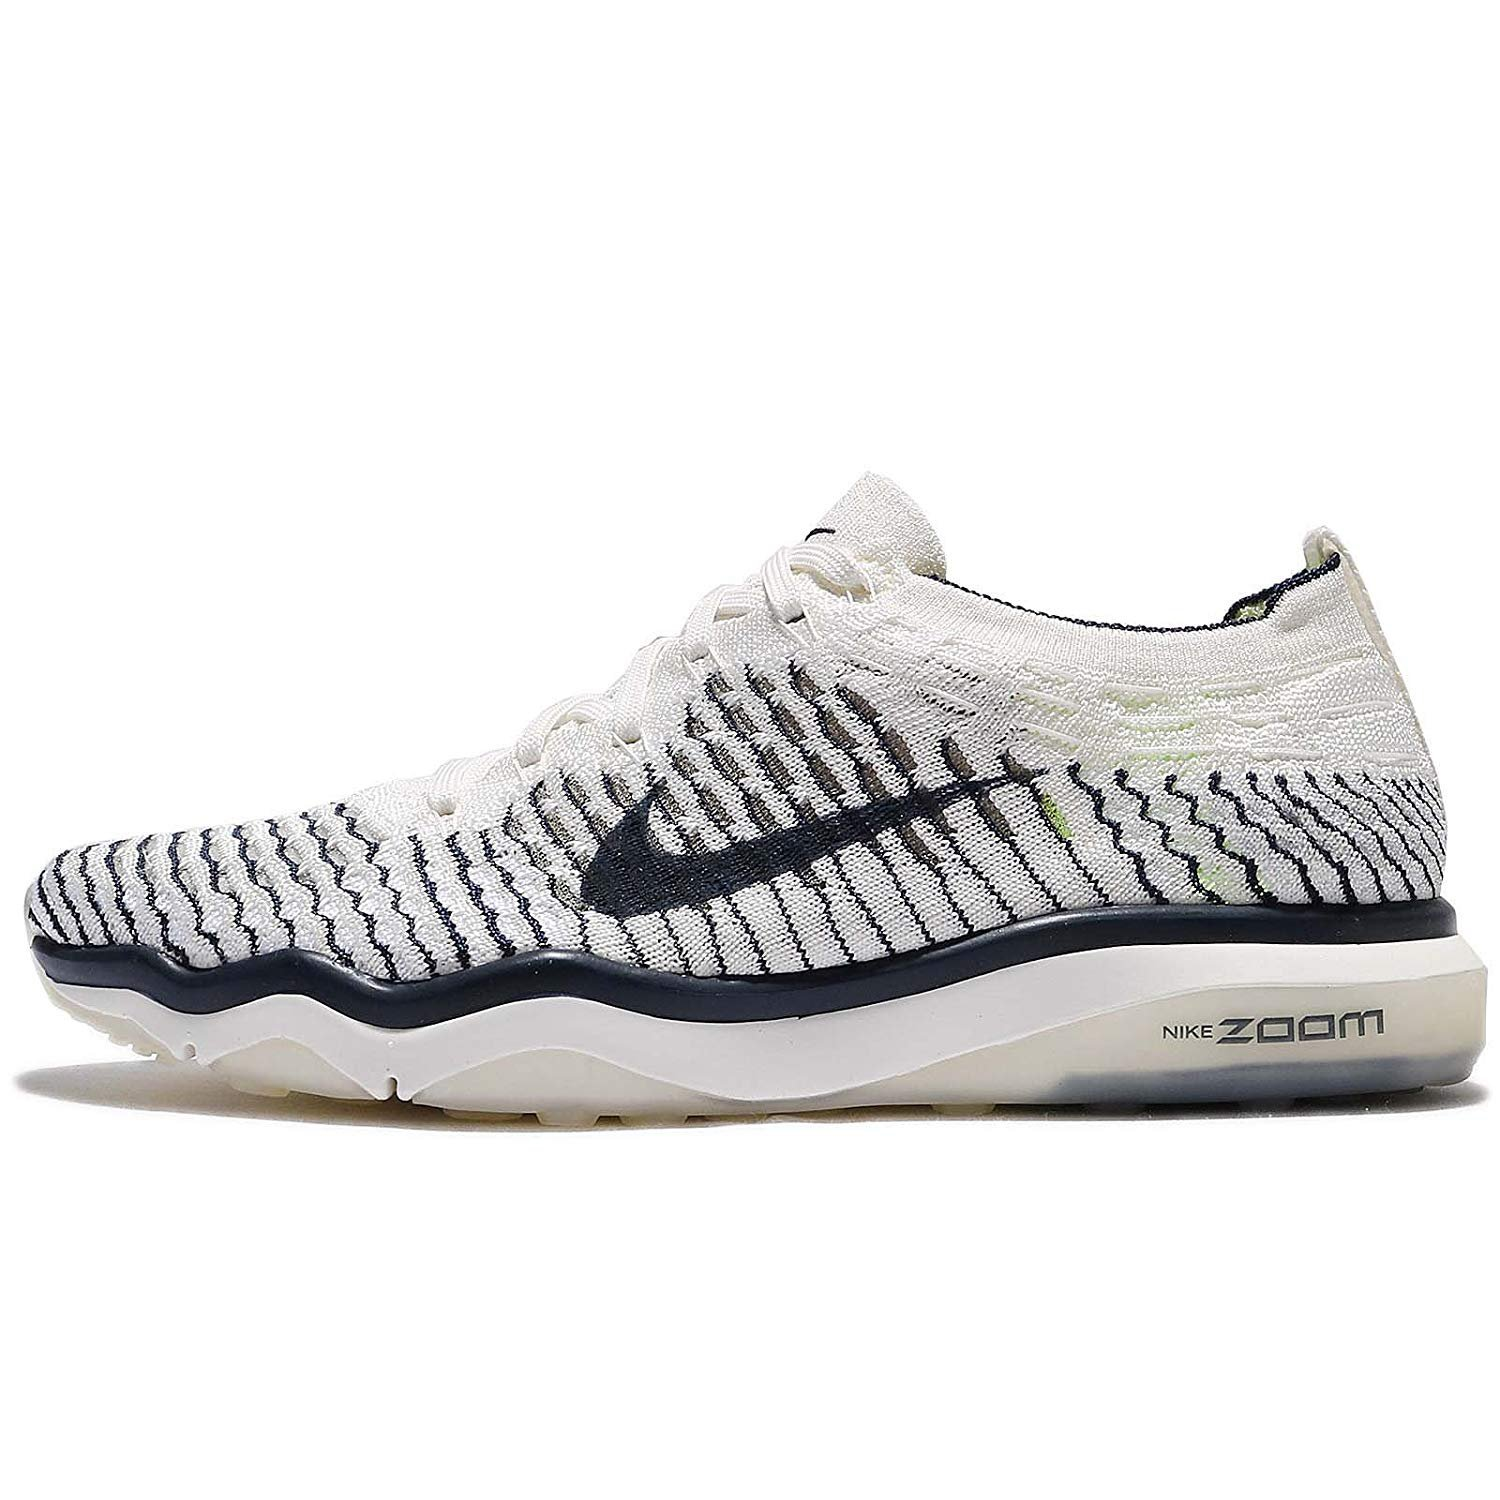 4345851bd995 Galleon - NIKE Women s Air Zoom Fearless Flyknit Training Shoes (9.5 ...